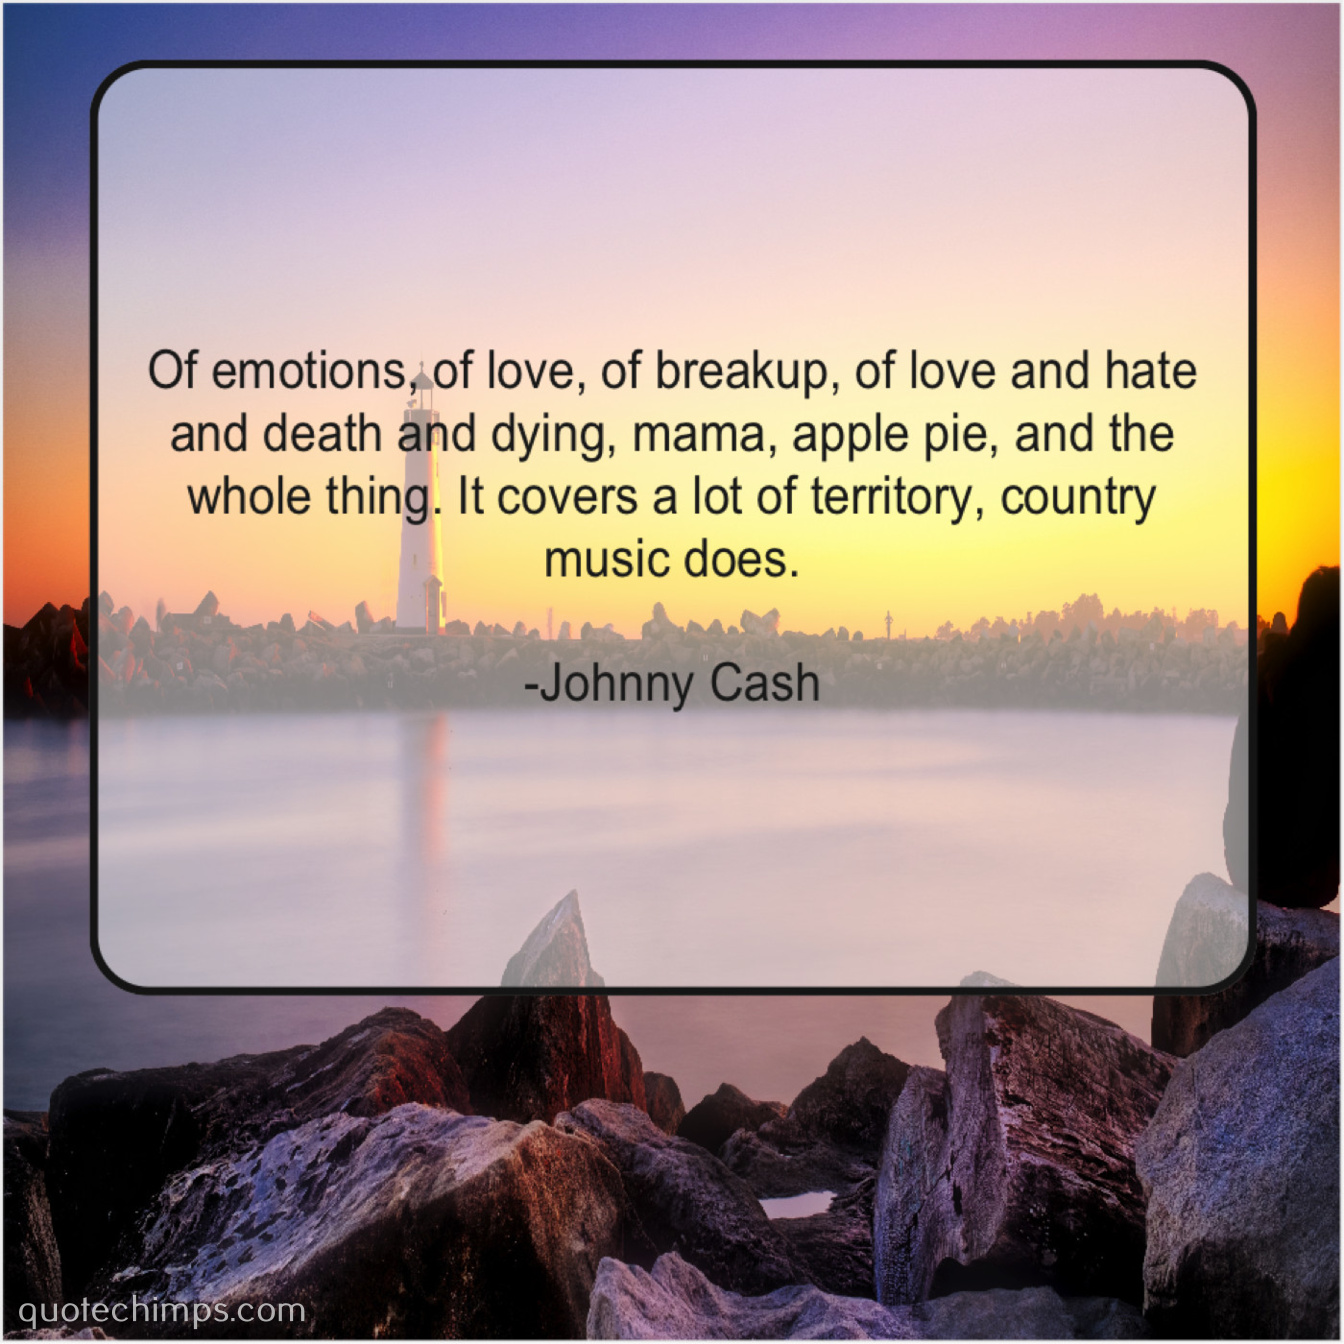 Johnny Cash Of Emotions Of Love Of Quote Chimps